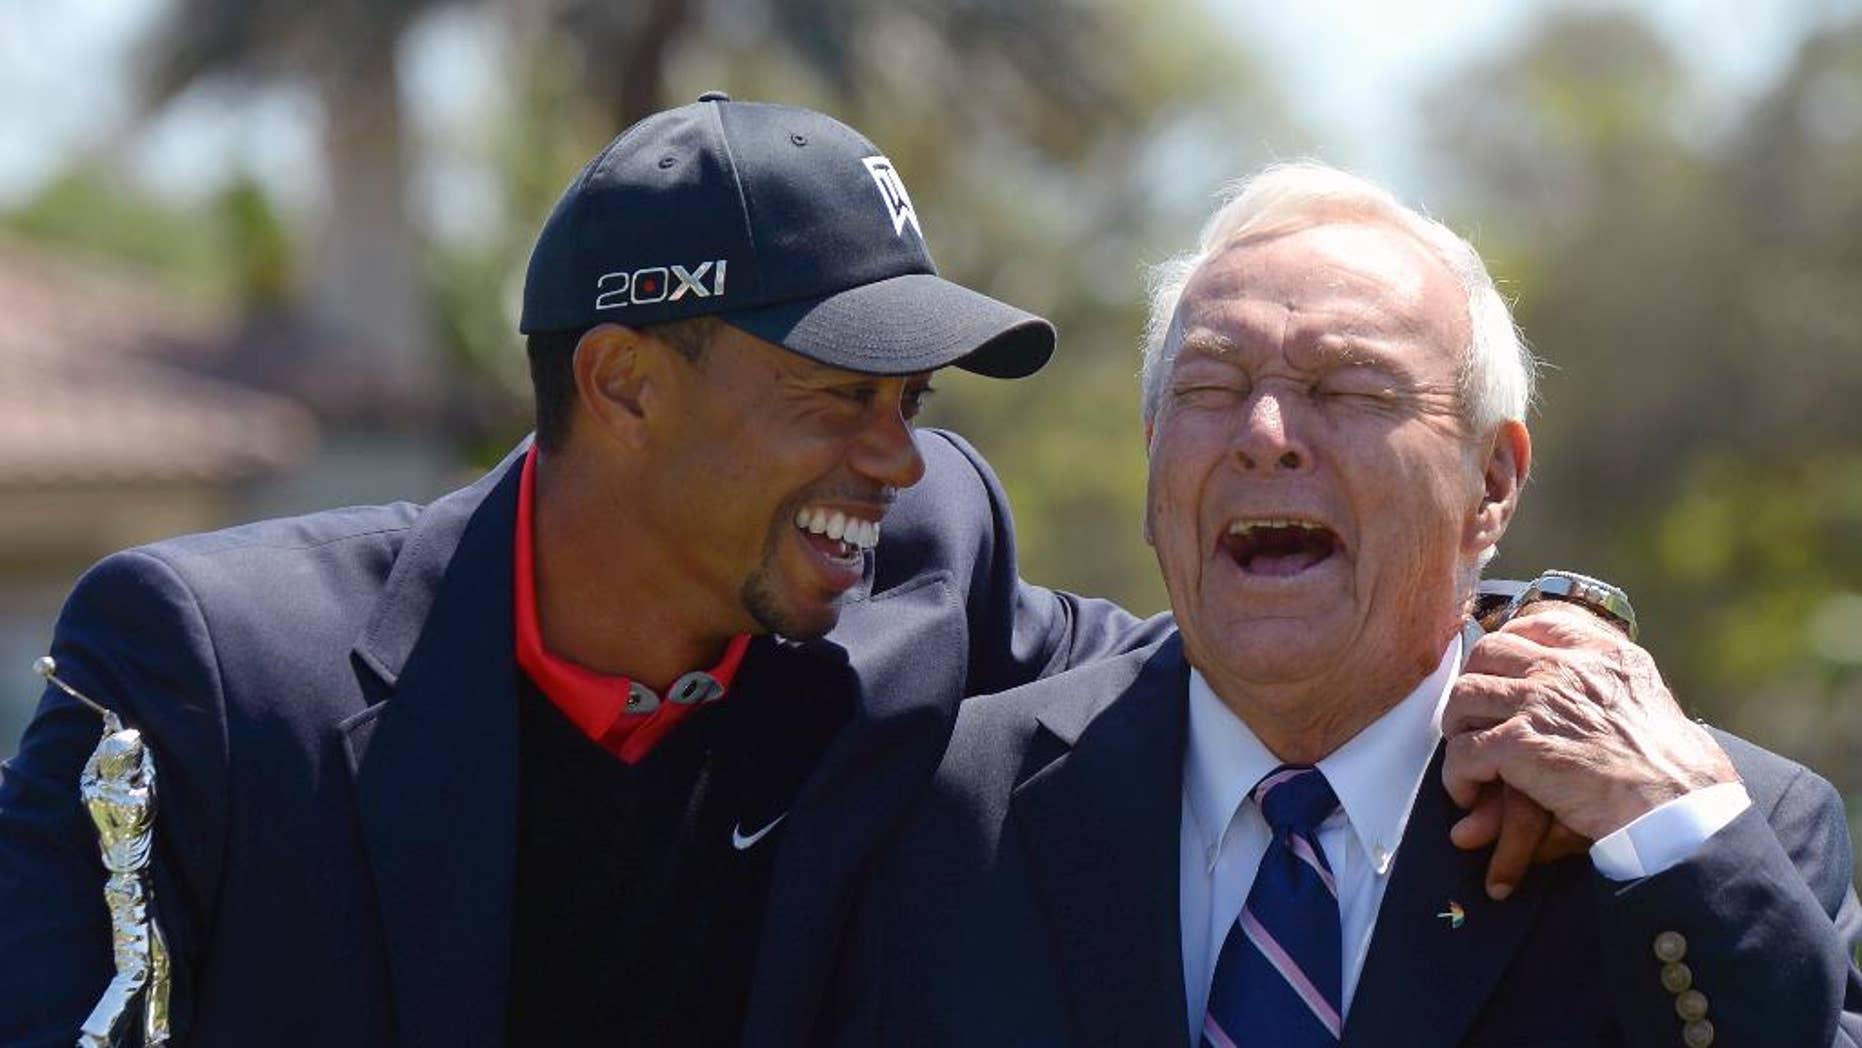 FILE - In this Monday, March 25, 2013 file photo, Tiger Woods, left, and Arnold Palmer share a laugh during the trophy presentation after Woods won the Arnold Palmer Invitational golf tournament in Orlando, Fla. Tiger Woods won't be at the Arnold Palmer Invitational next week and still doesn't know when he will play again. Woods announced on his website Thursday night, March 9, 2017 that ongoing rest and rehabilitation on his back will keep him away from Bay Hill and the tournament he has won a record eight times. (AP Photo/Phelan M. Ebenhack, File)